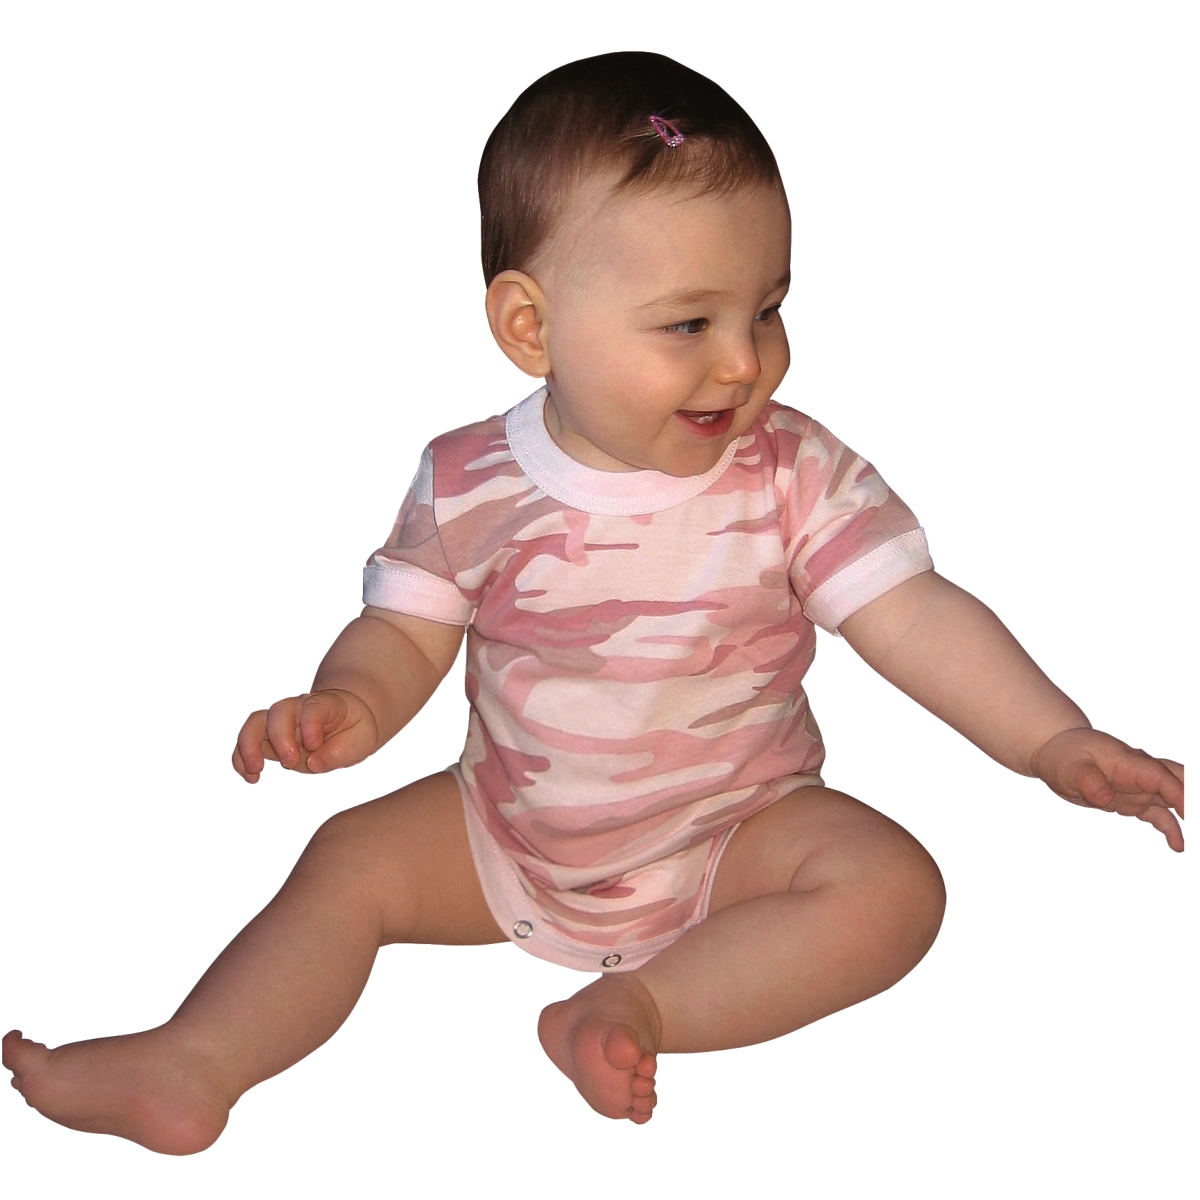 New Baby Pink Camo Onsie, Infant - Toddler Bodysuit